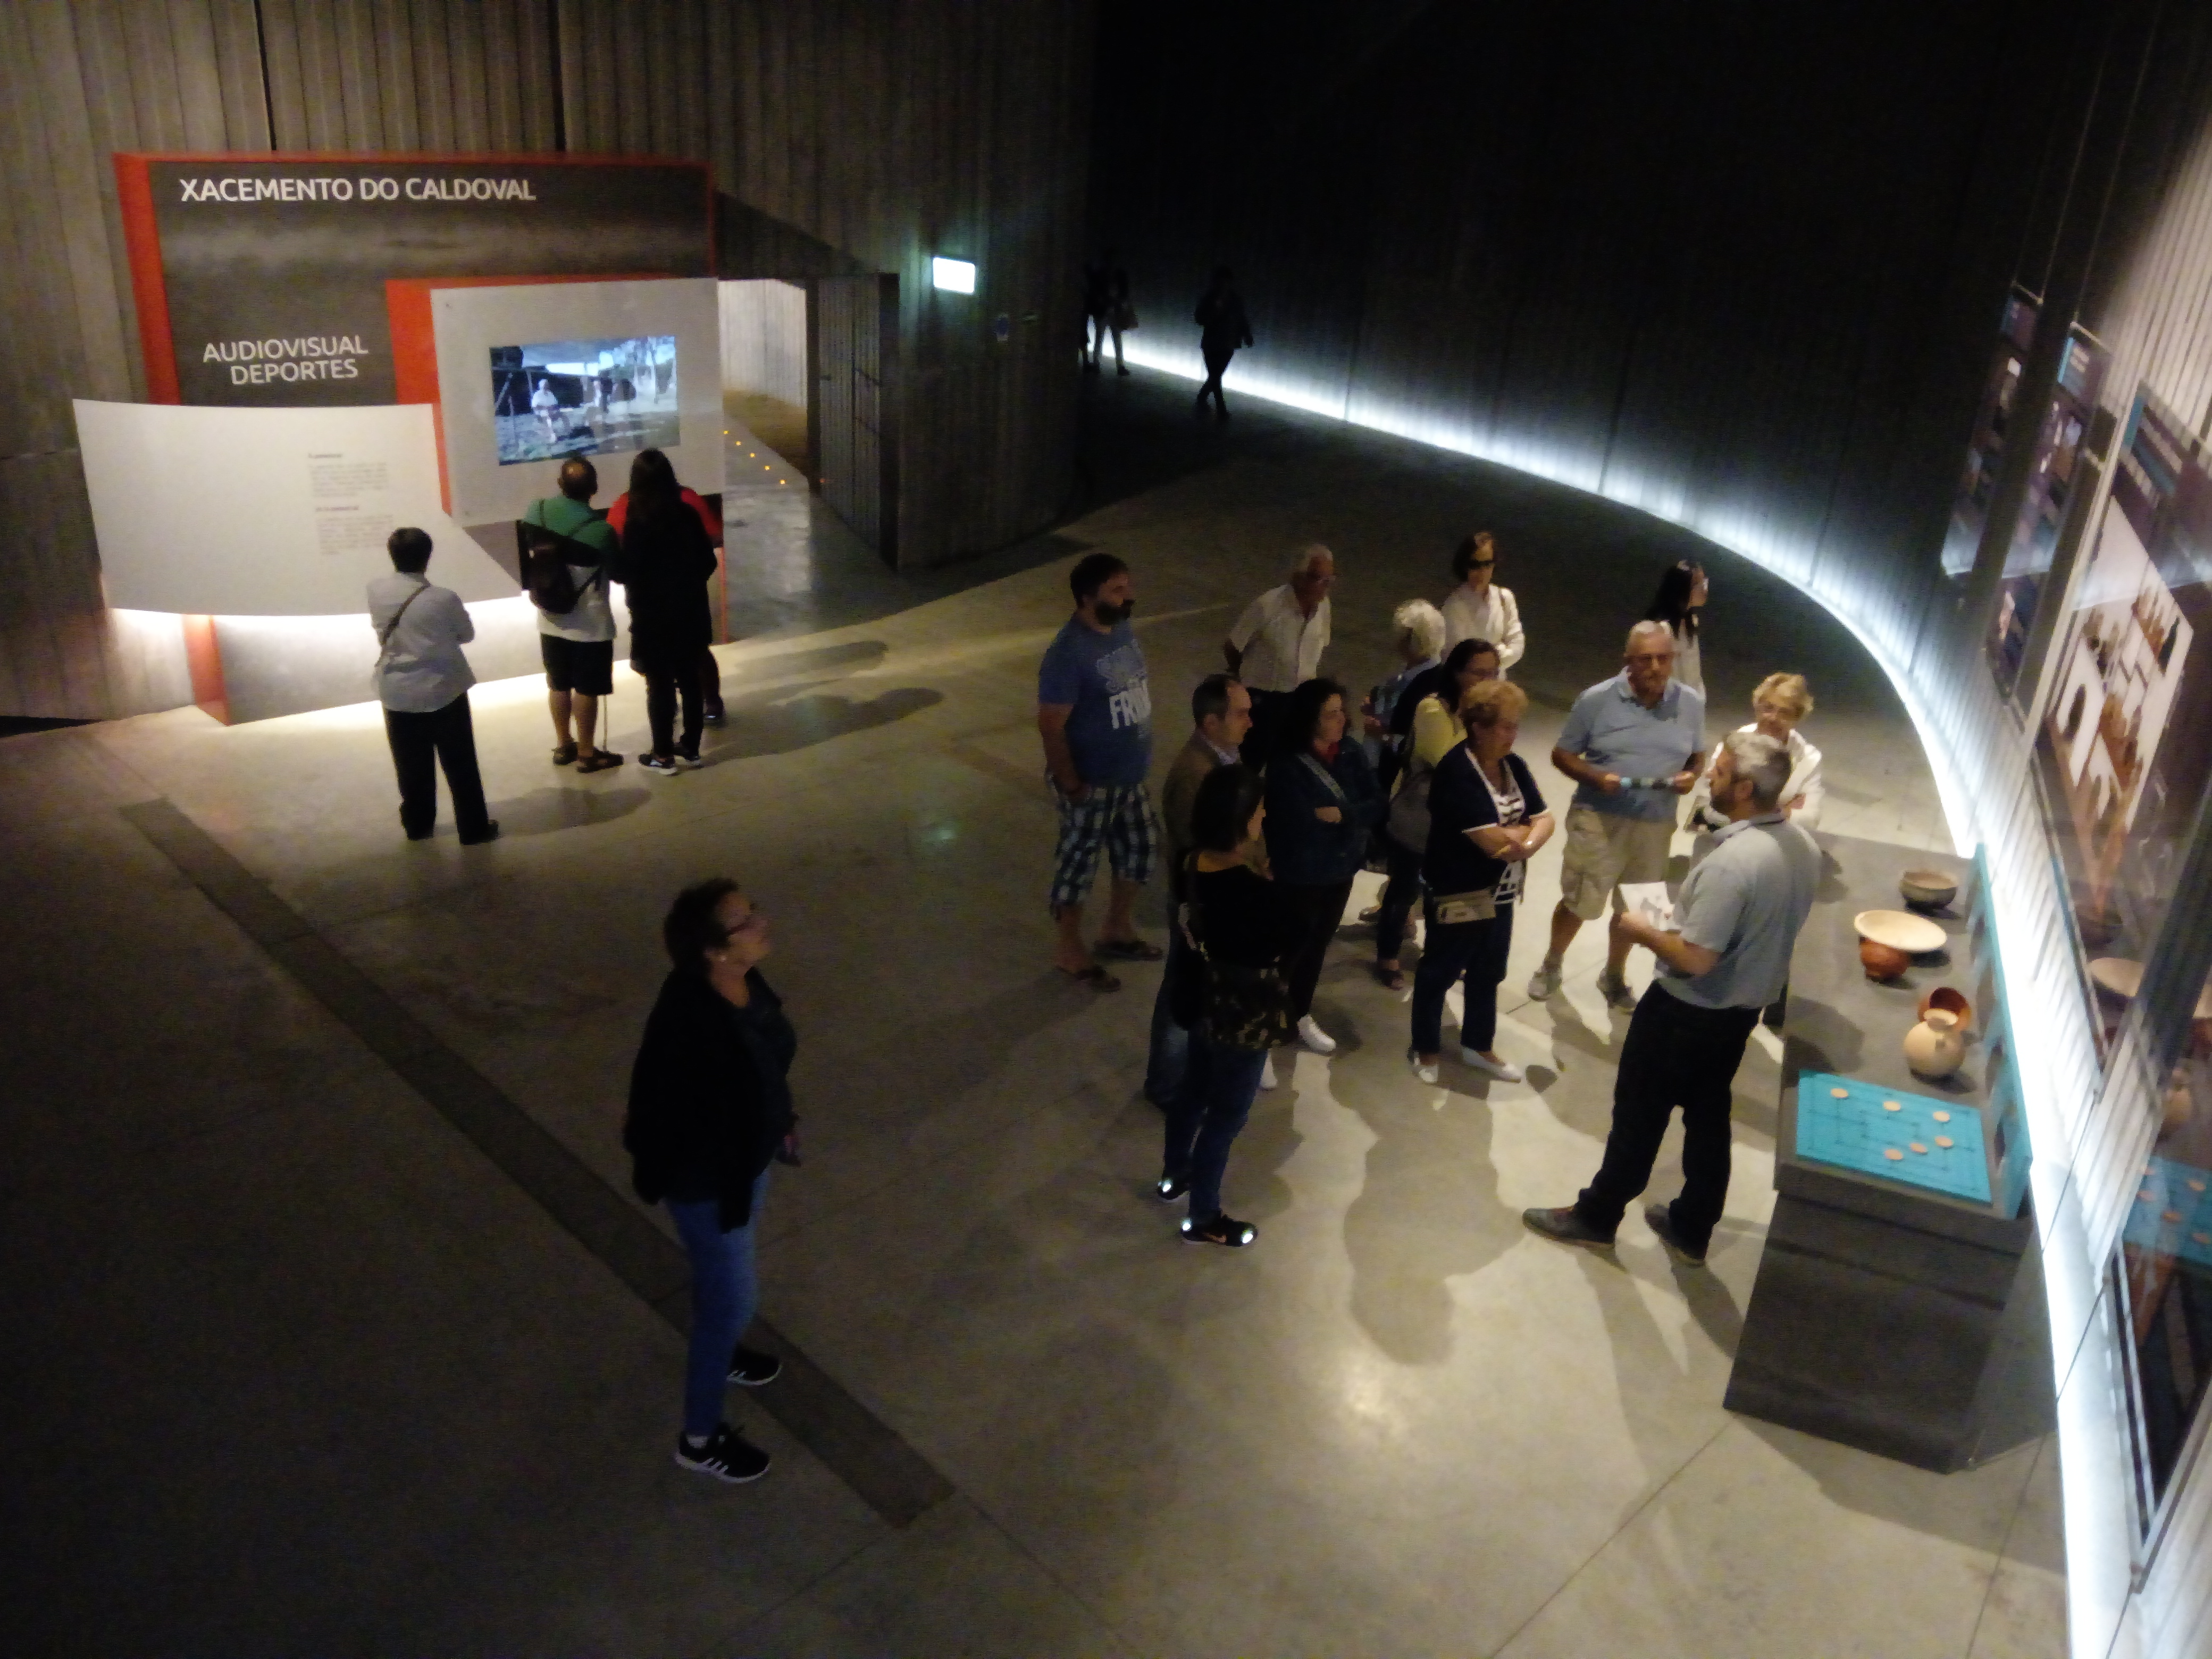 Museo do Caldoval